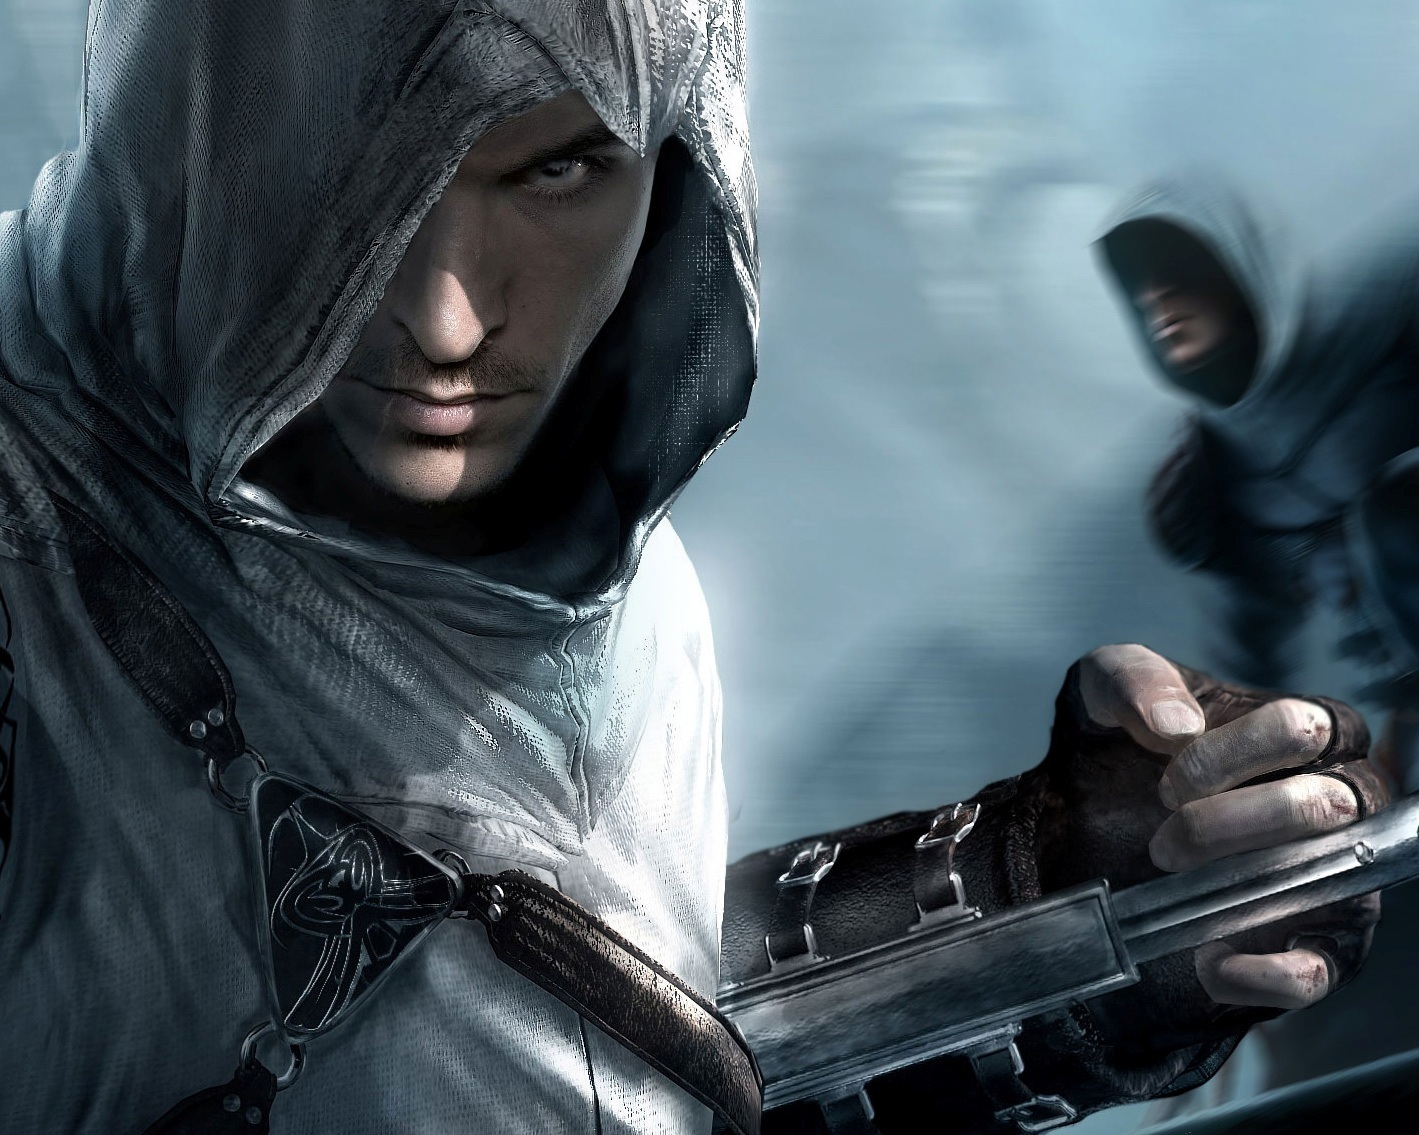 22957 download wallpaper Assassin's Creed, Games screensavers and pictures for free